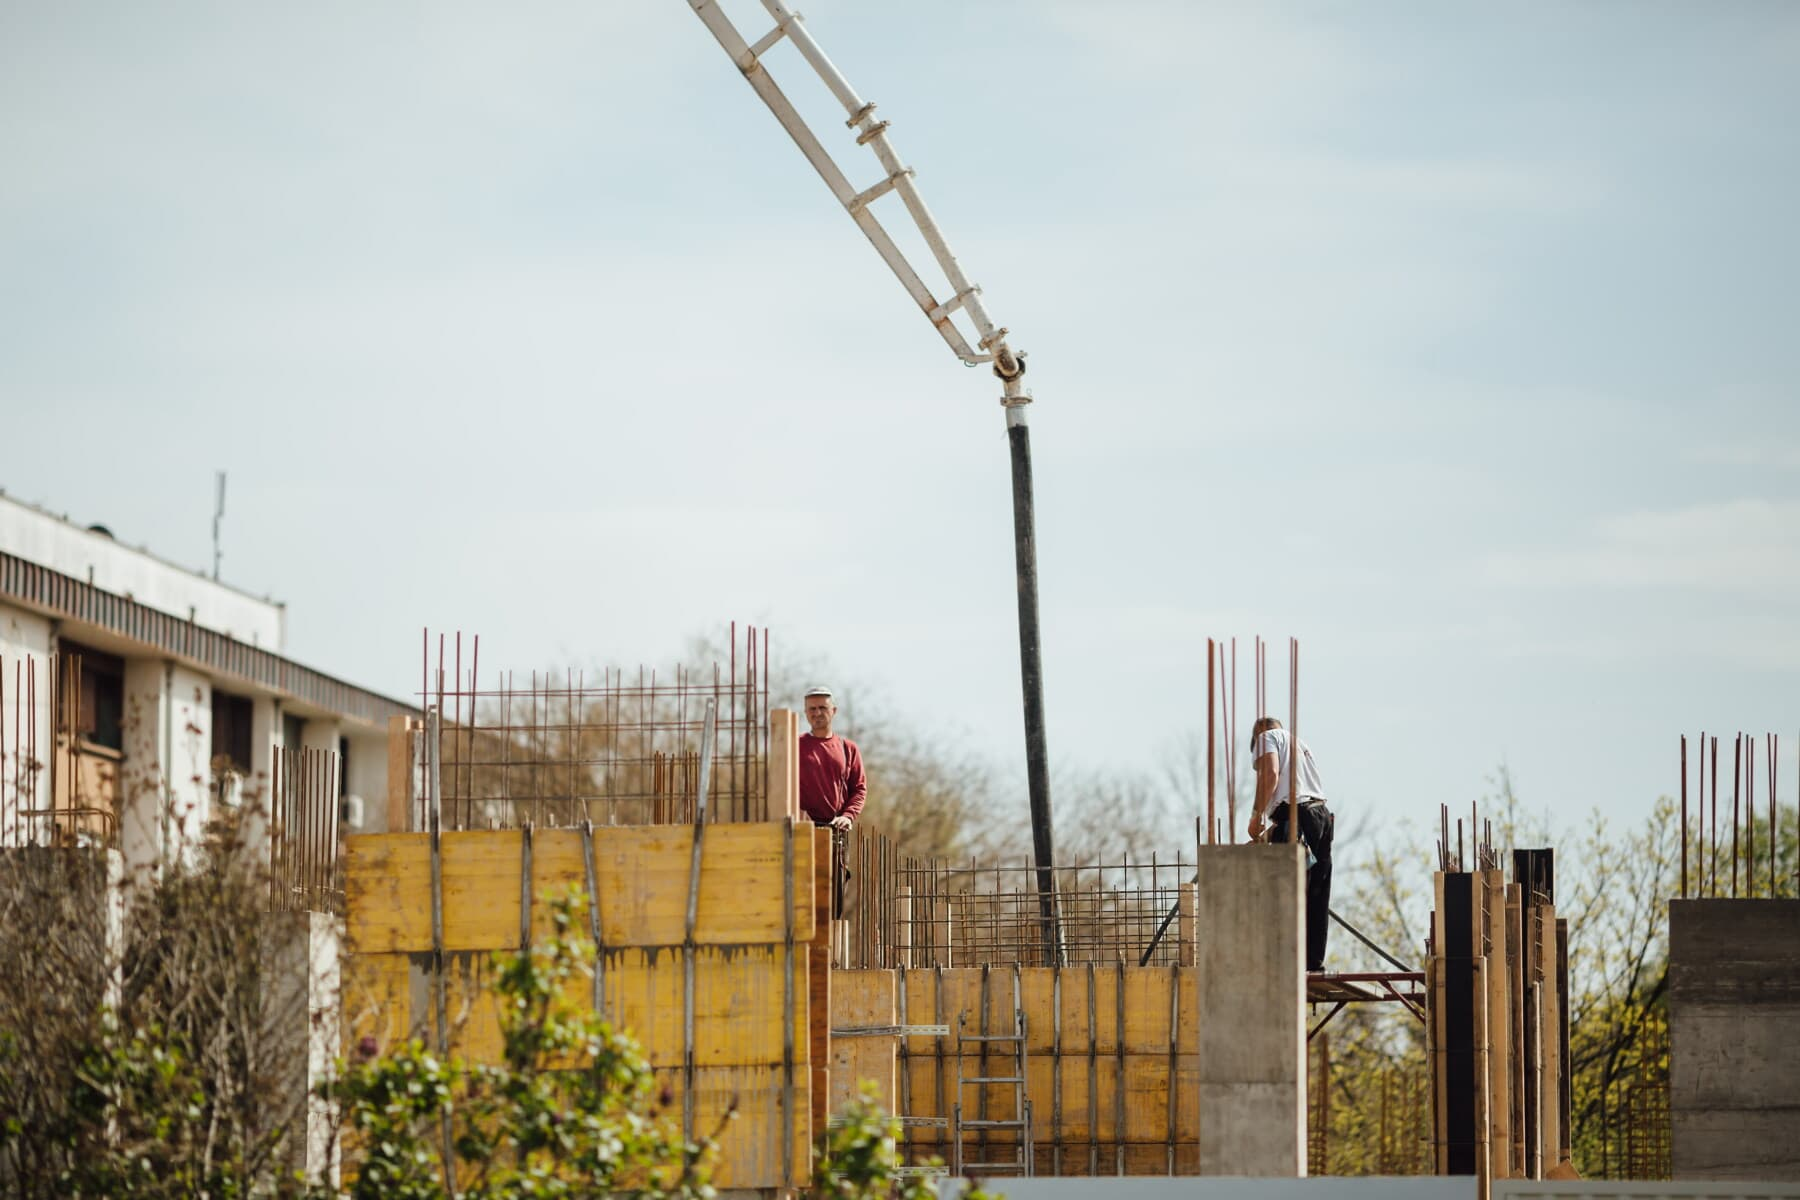 construction worker, construction, buildings, workplace, workers, employment, engineering, building, equipment, industry